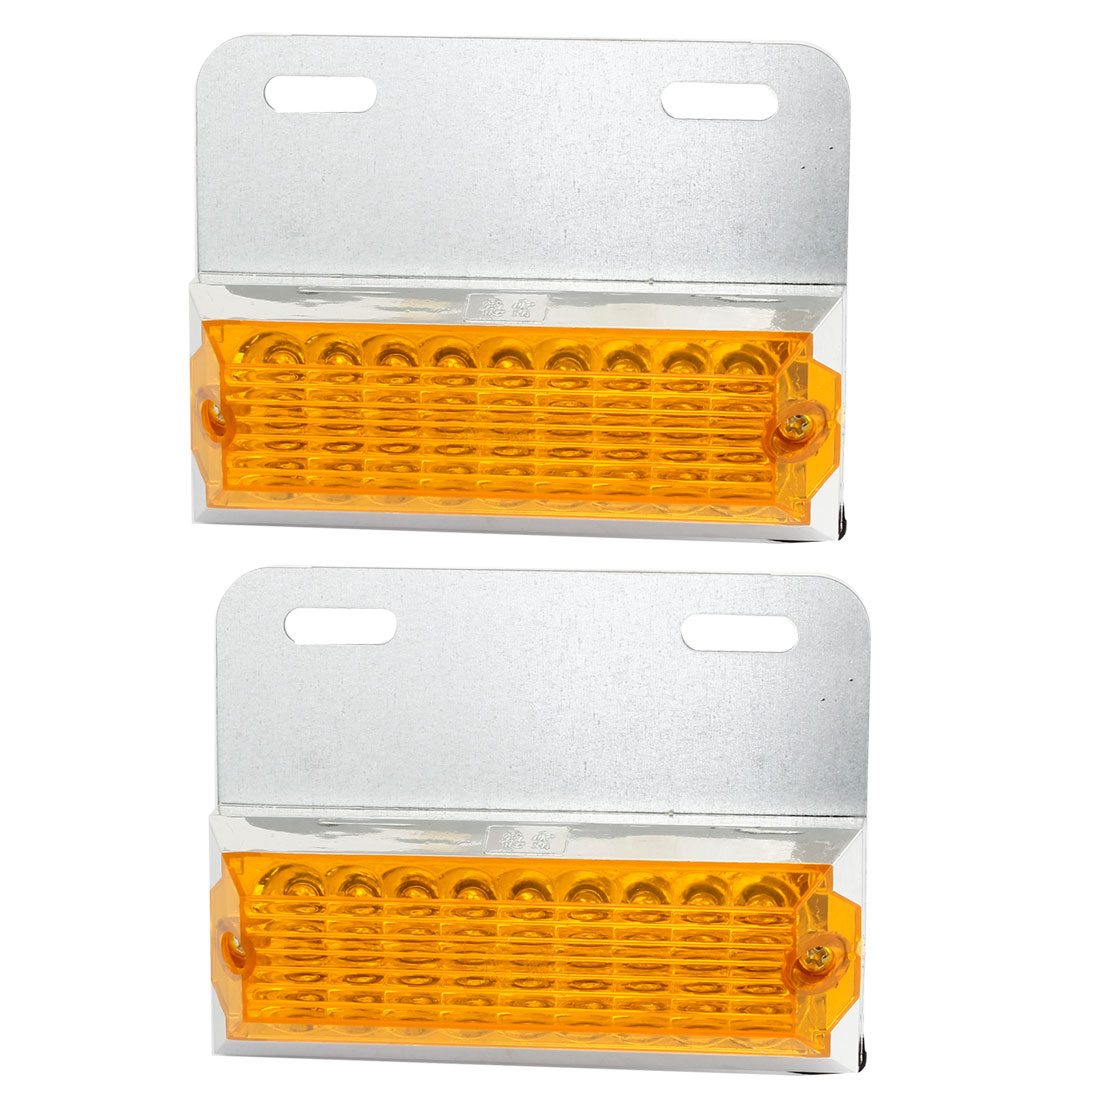 2 Pcs Metal Plastic Shell 18 Yellow LED Side Marker Light Decorative Lamp for Car